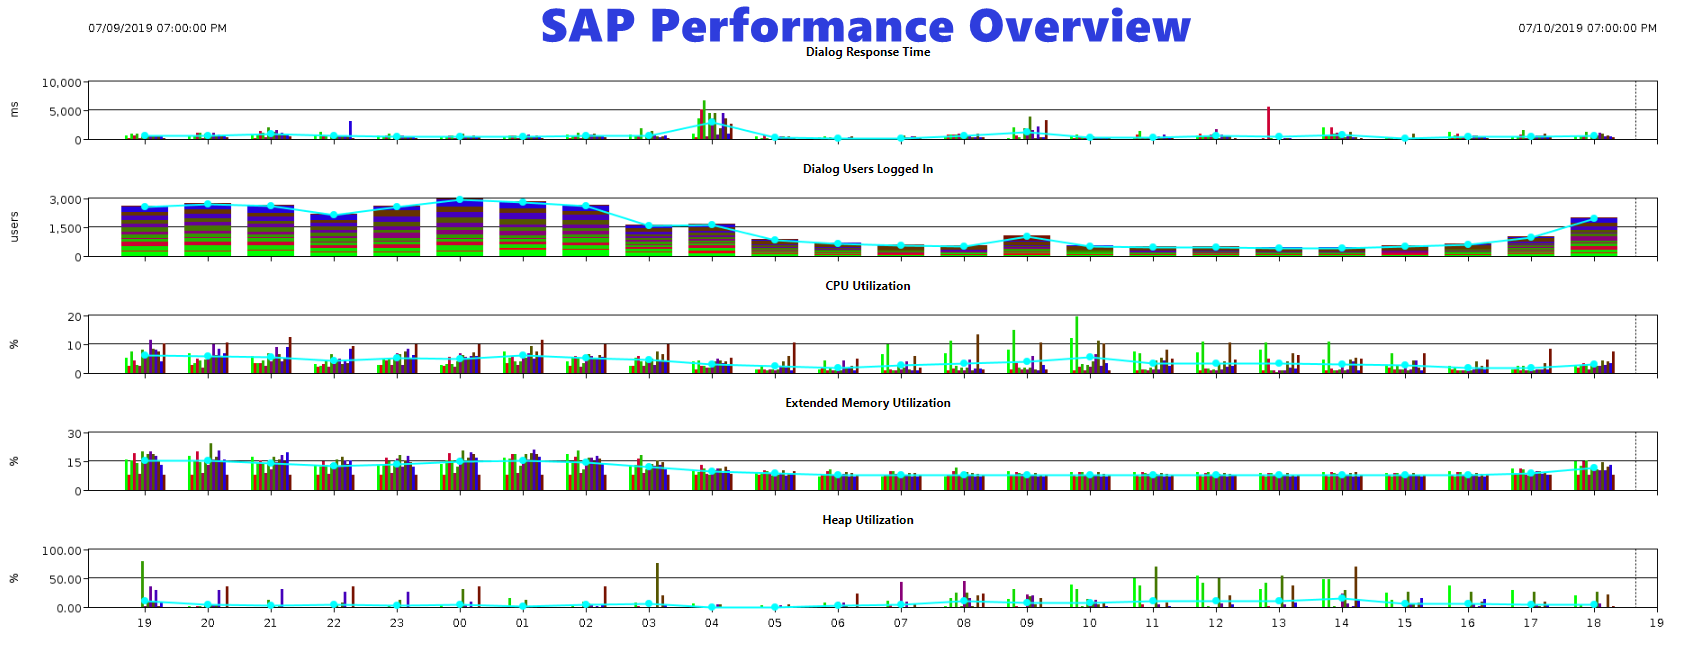 SAP-Performance-Overview